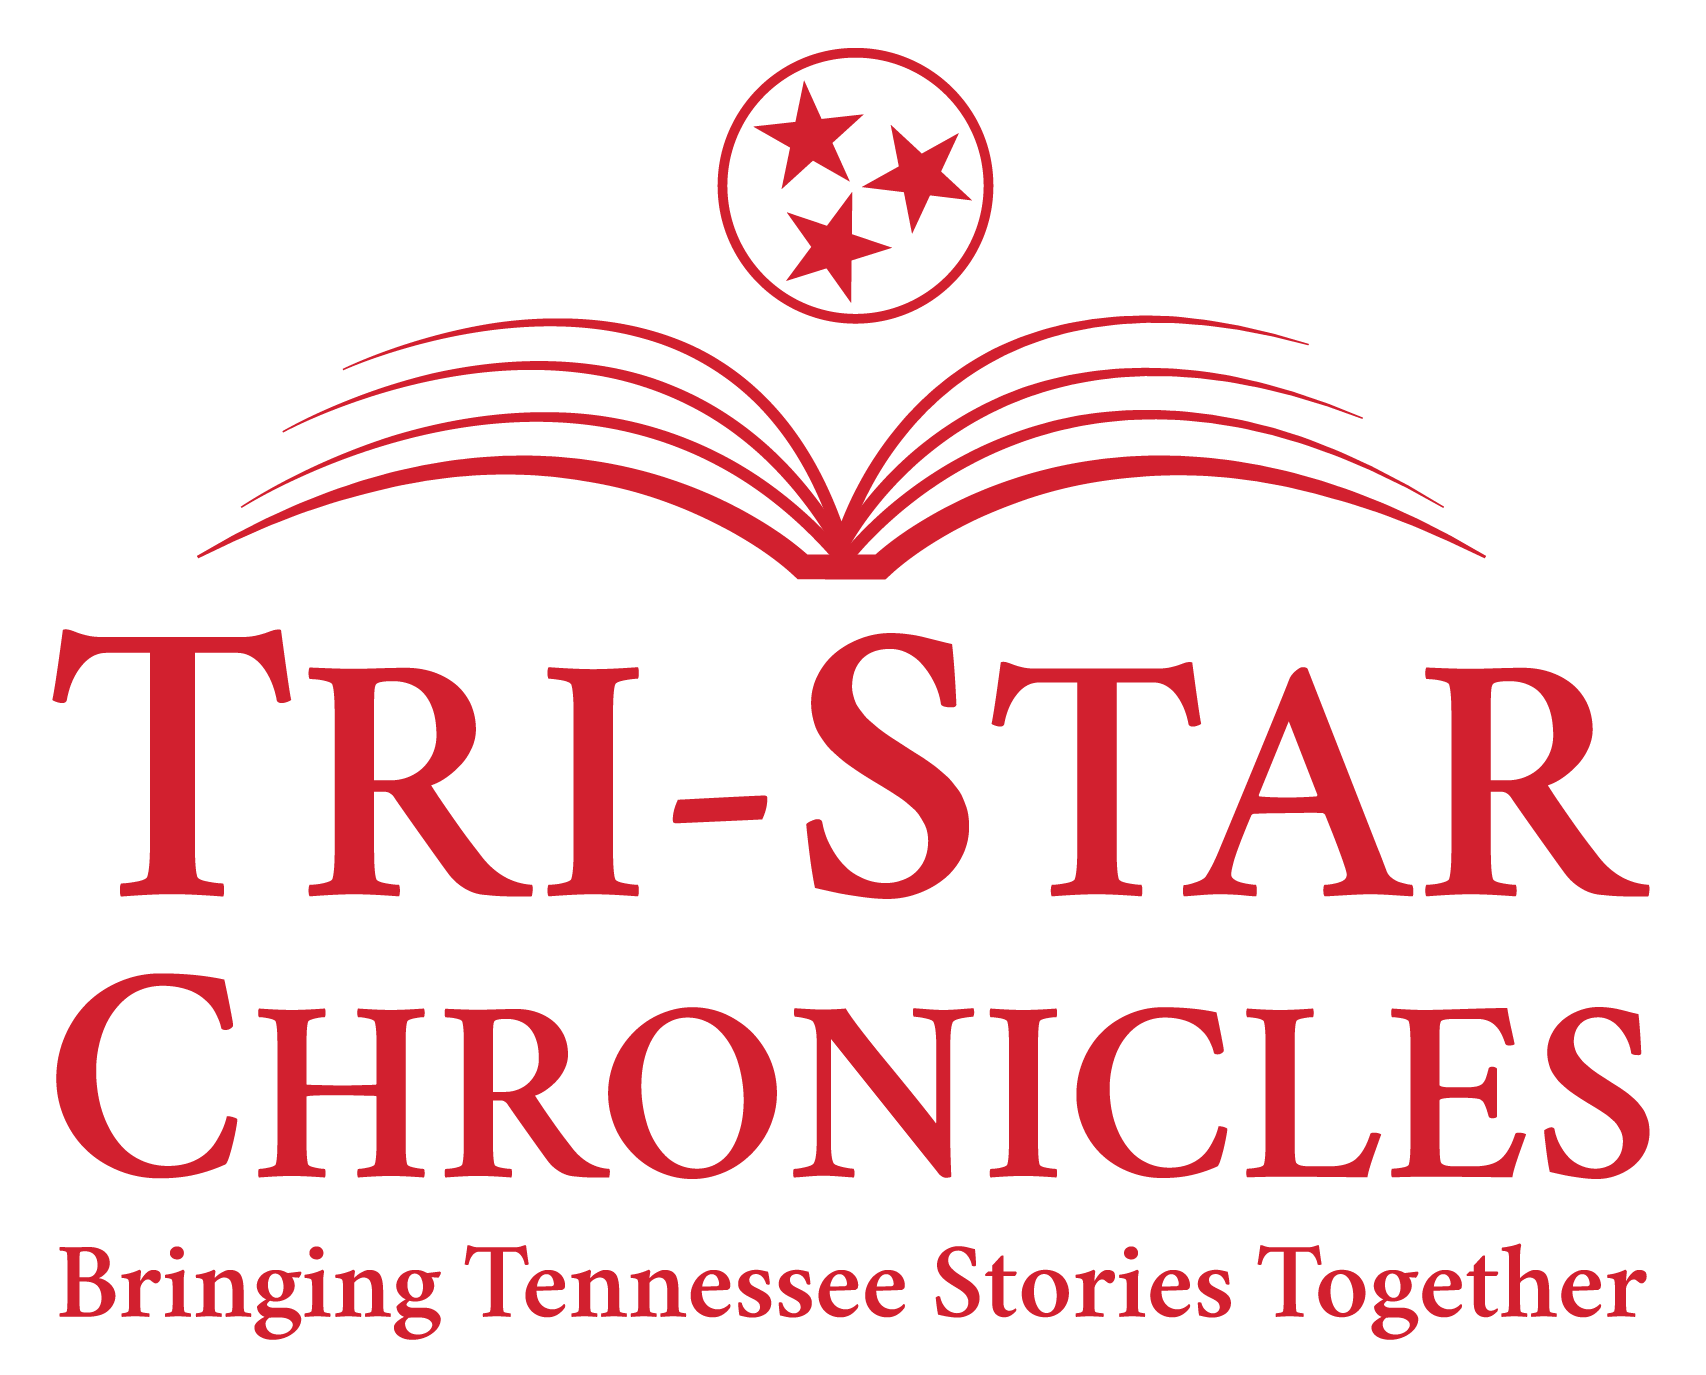 Tri-Star Chronicles